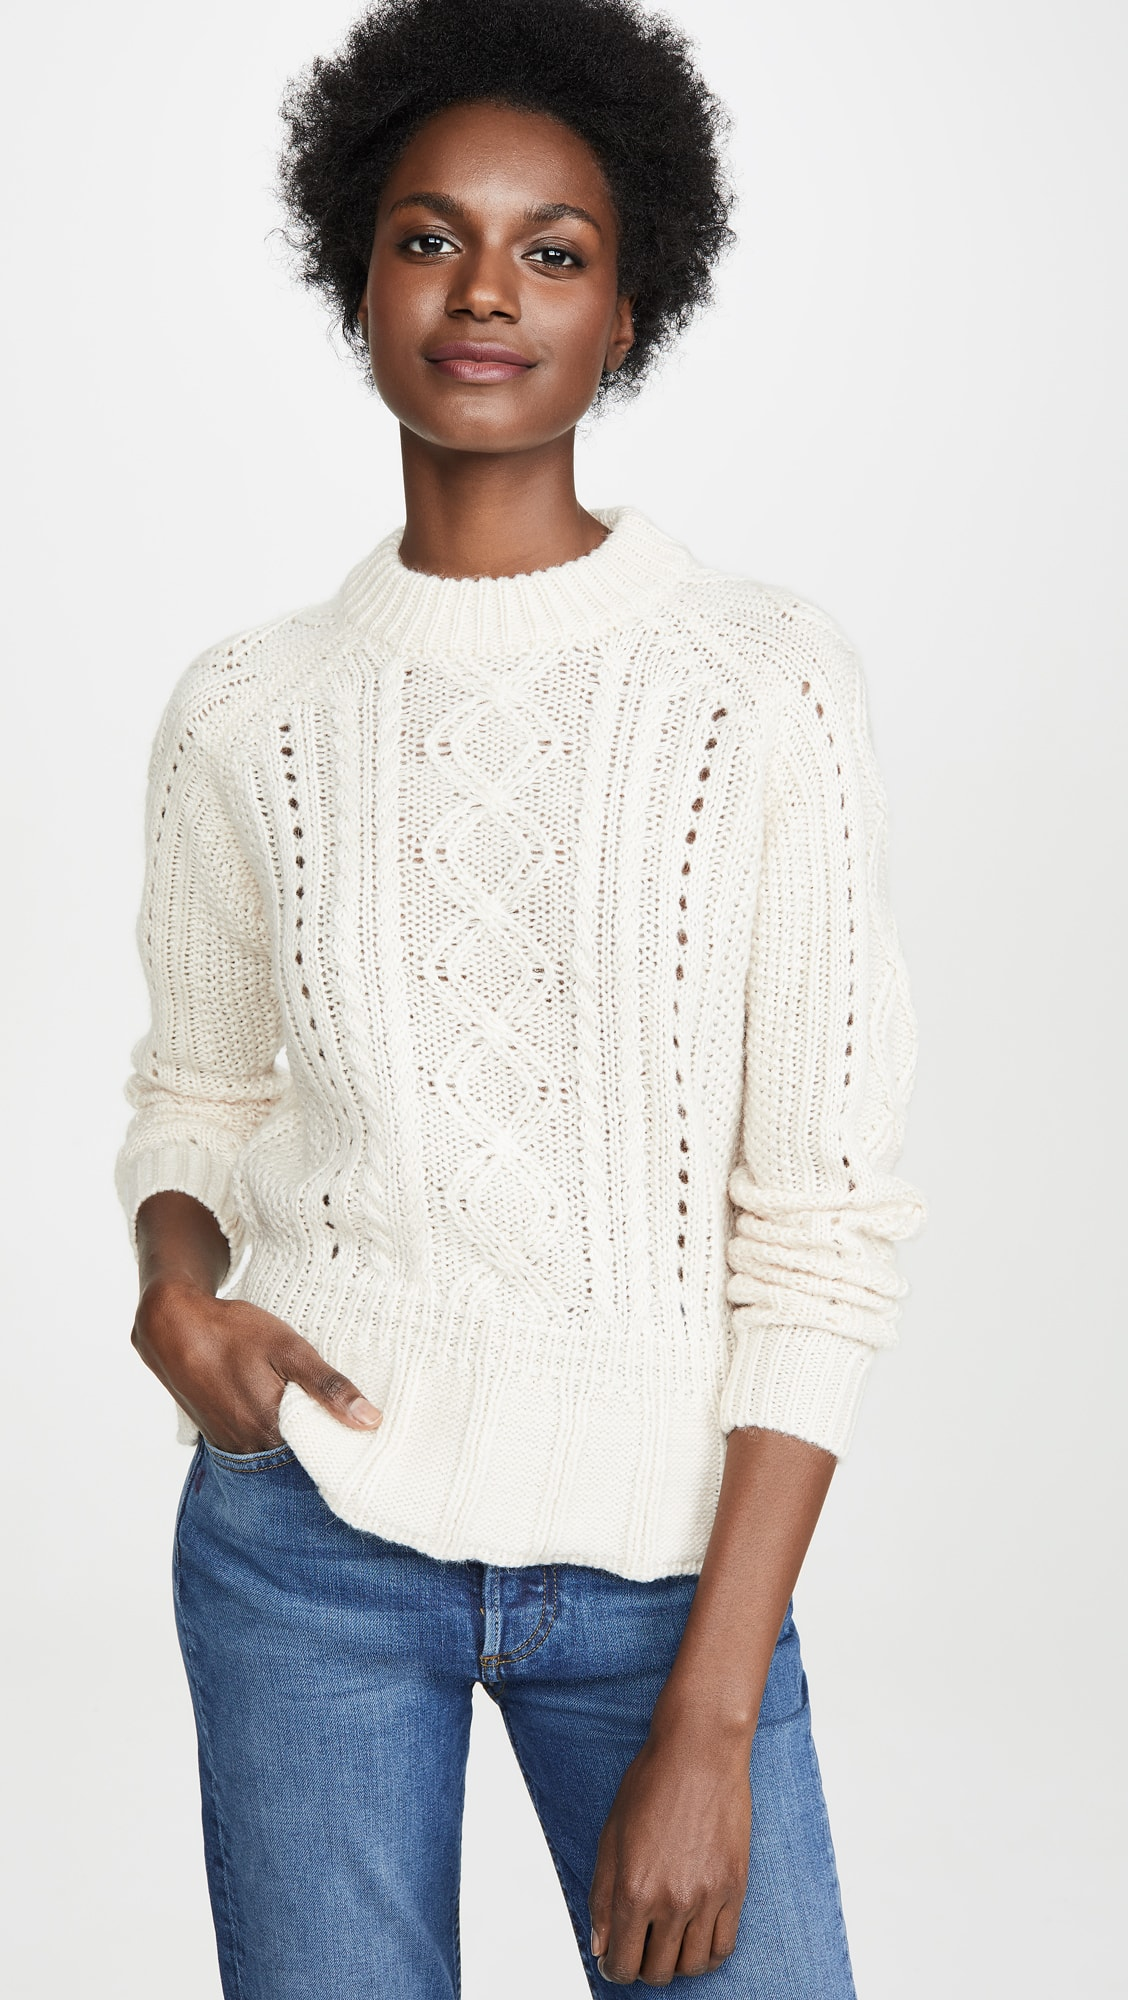 woman in white sweater